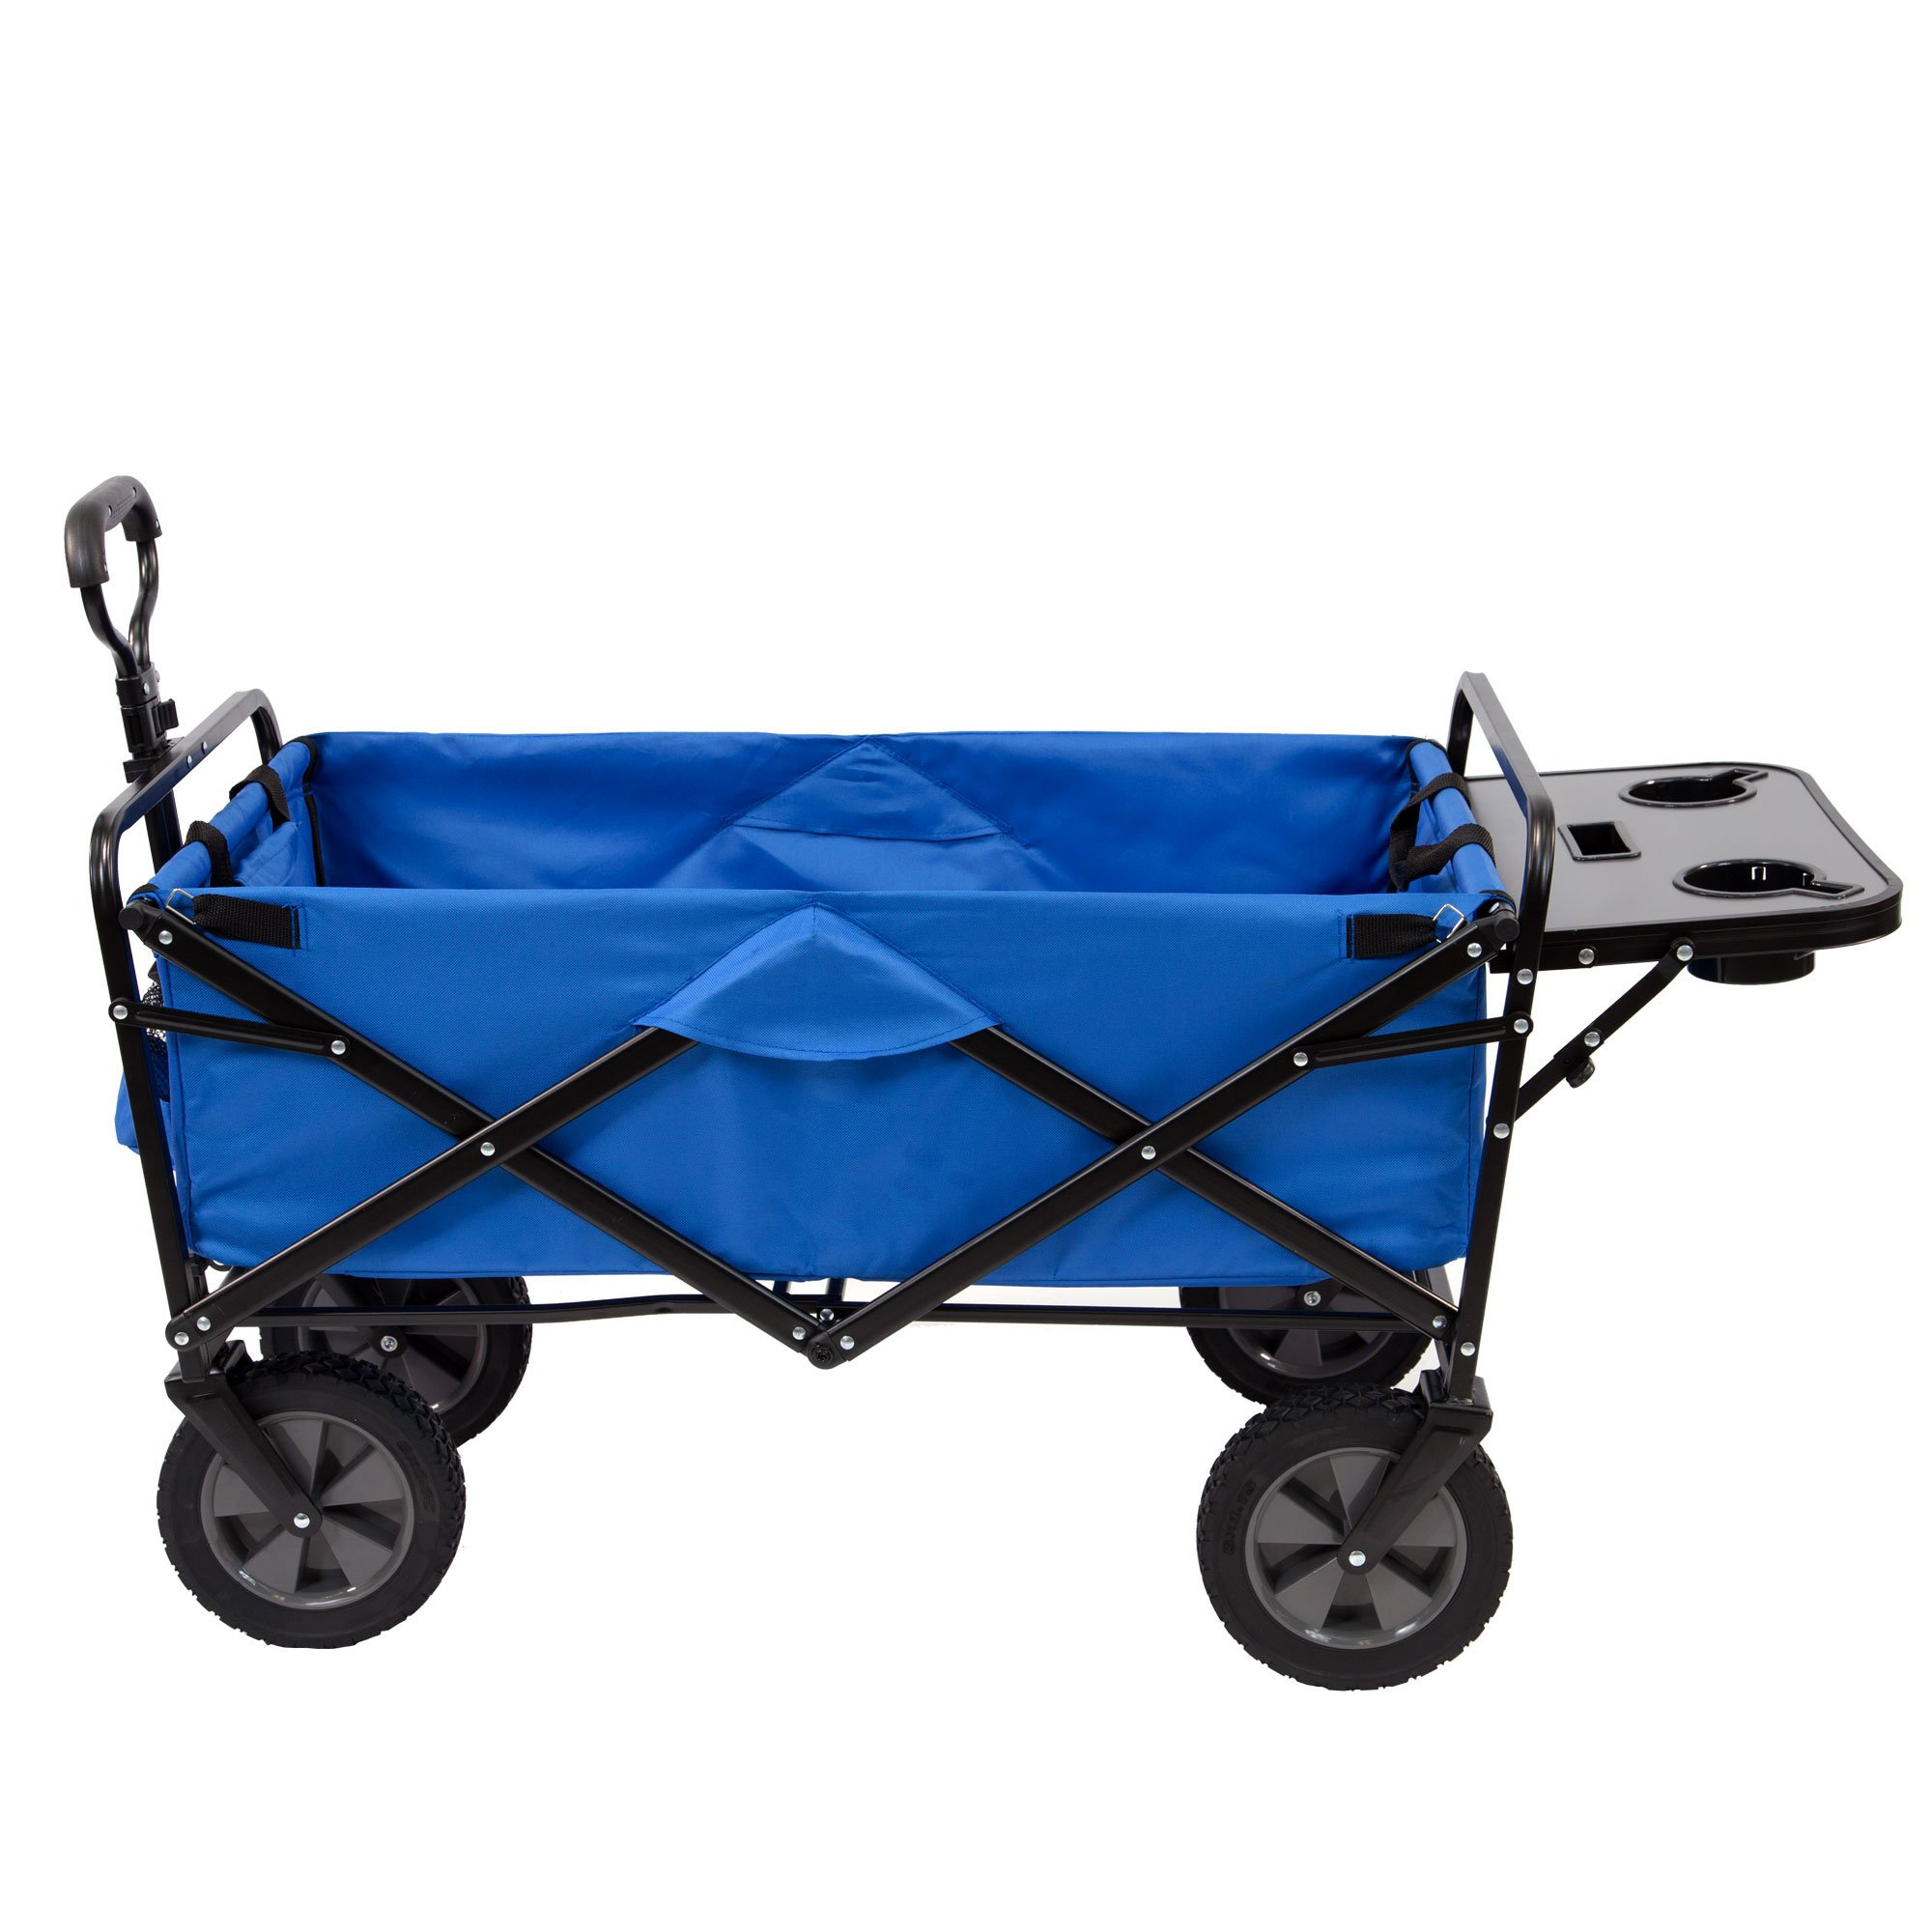 Mac Sports Folding Garden Utility Wagon w/Table, Blue